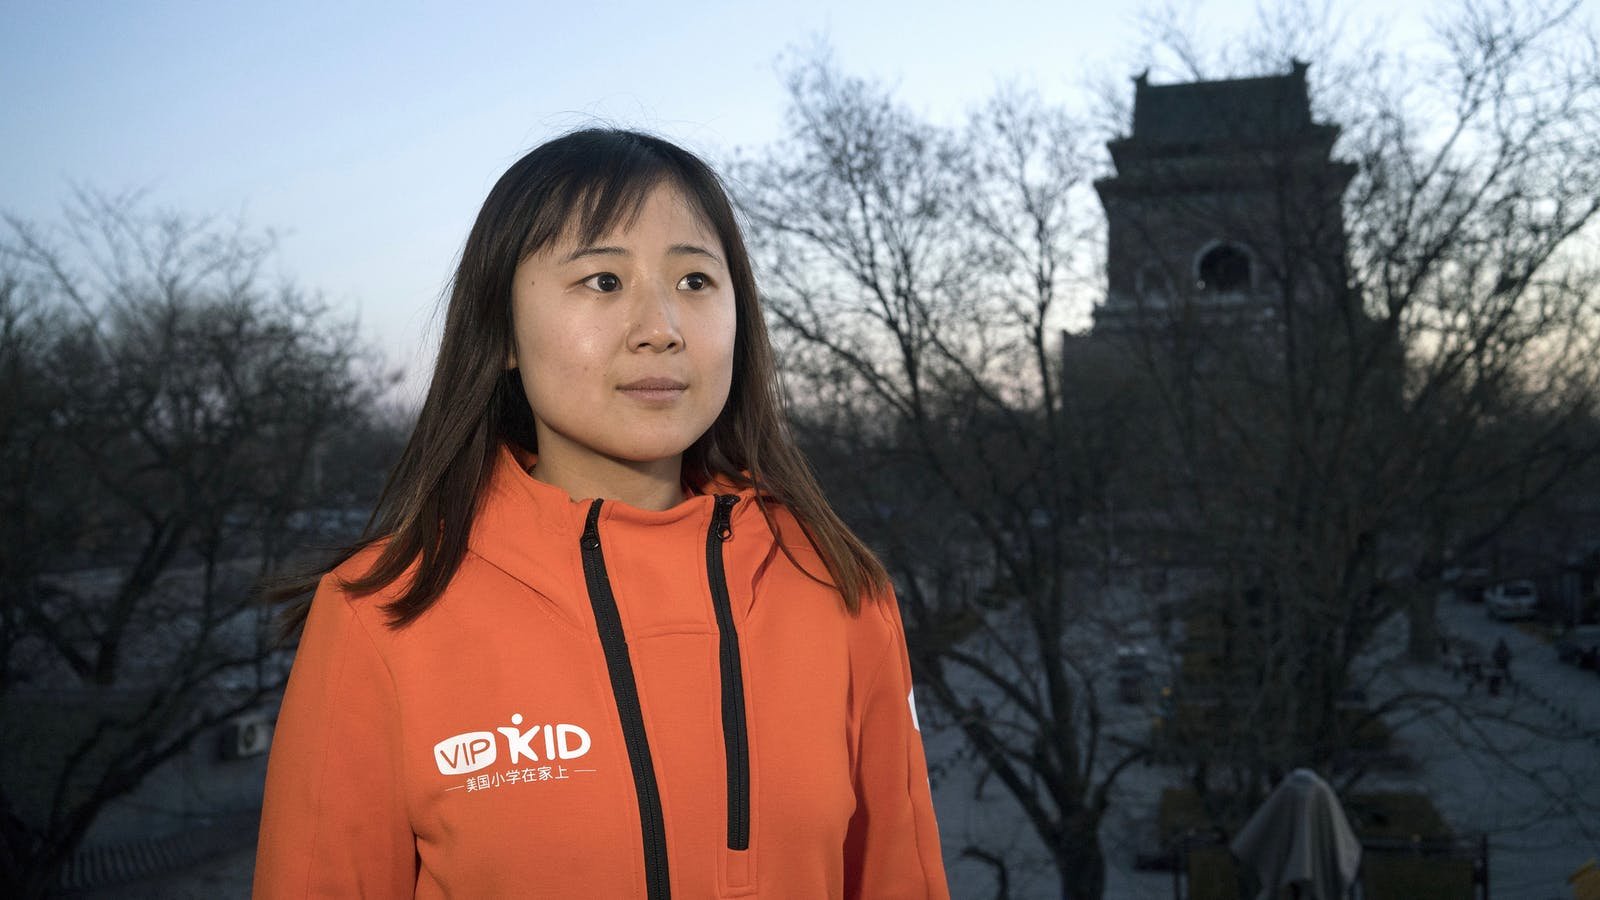 VIPKid founder Cindy Mi. Photo by Bloomberg